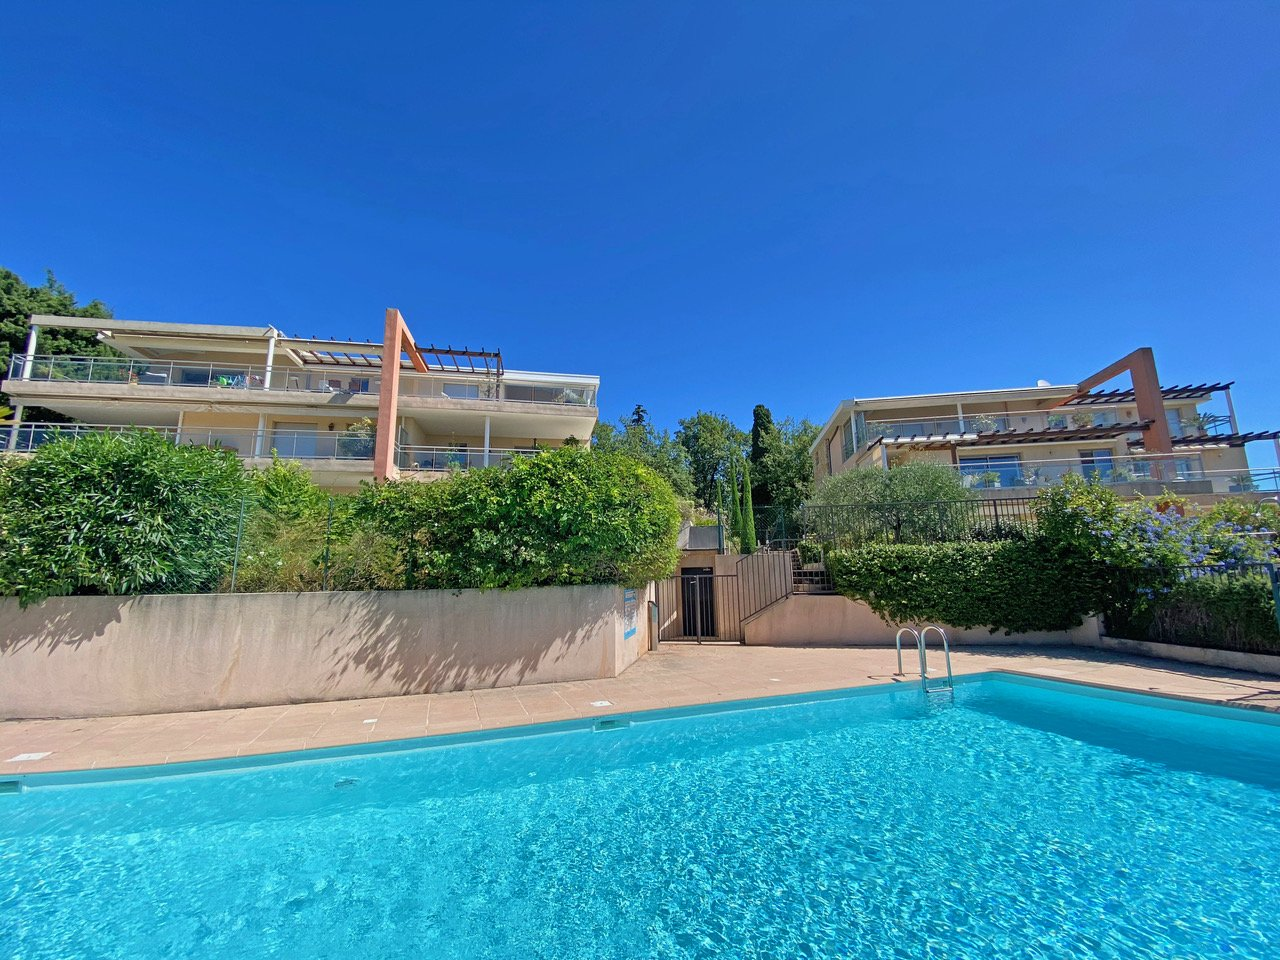 VENCE - 3 bed room garden apartment with terraces and garden, sea view, pool, 2 garages